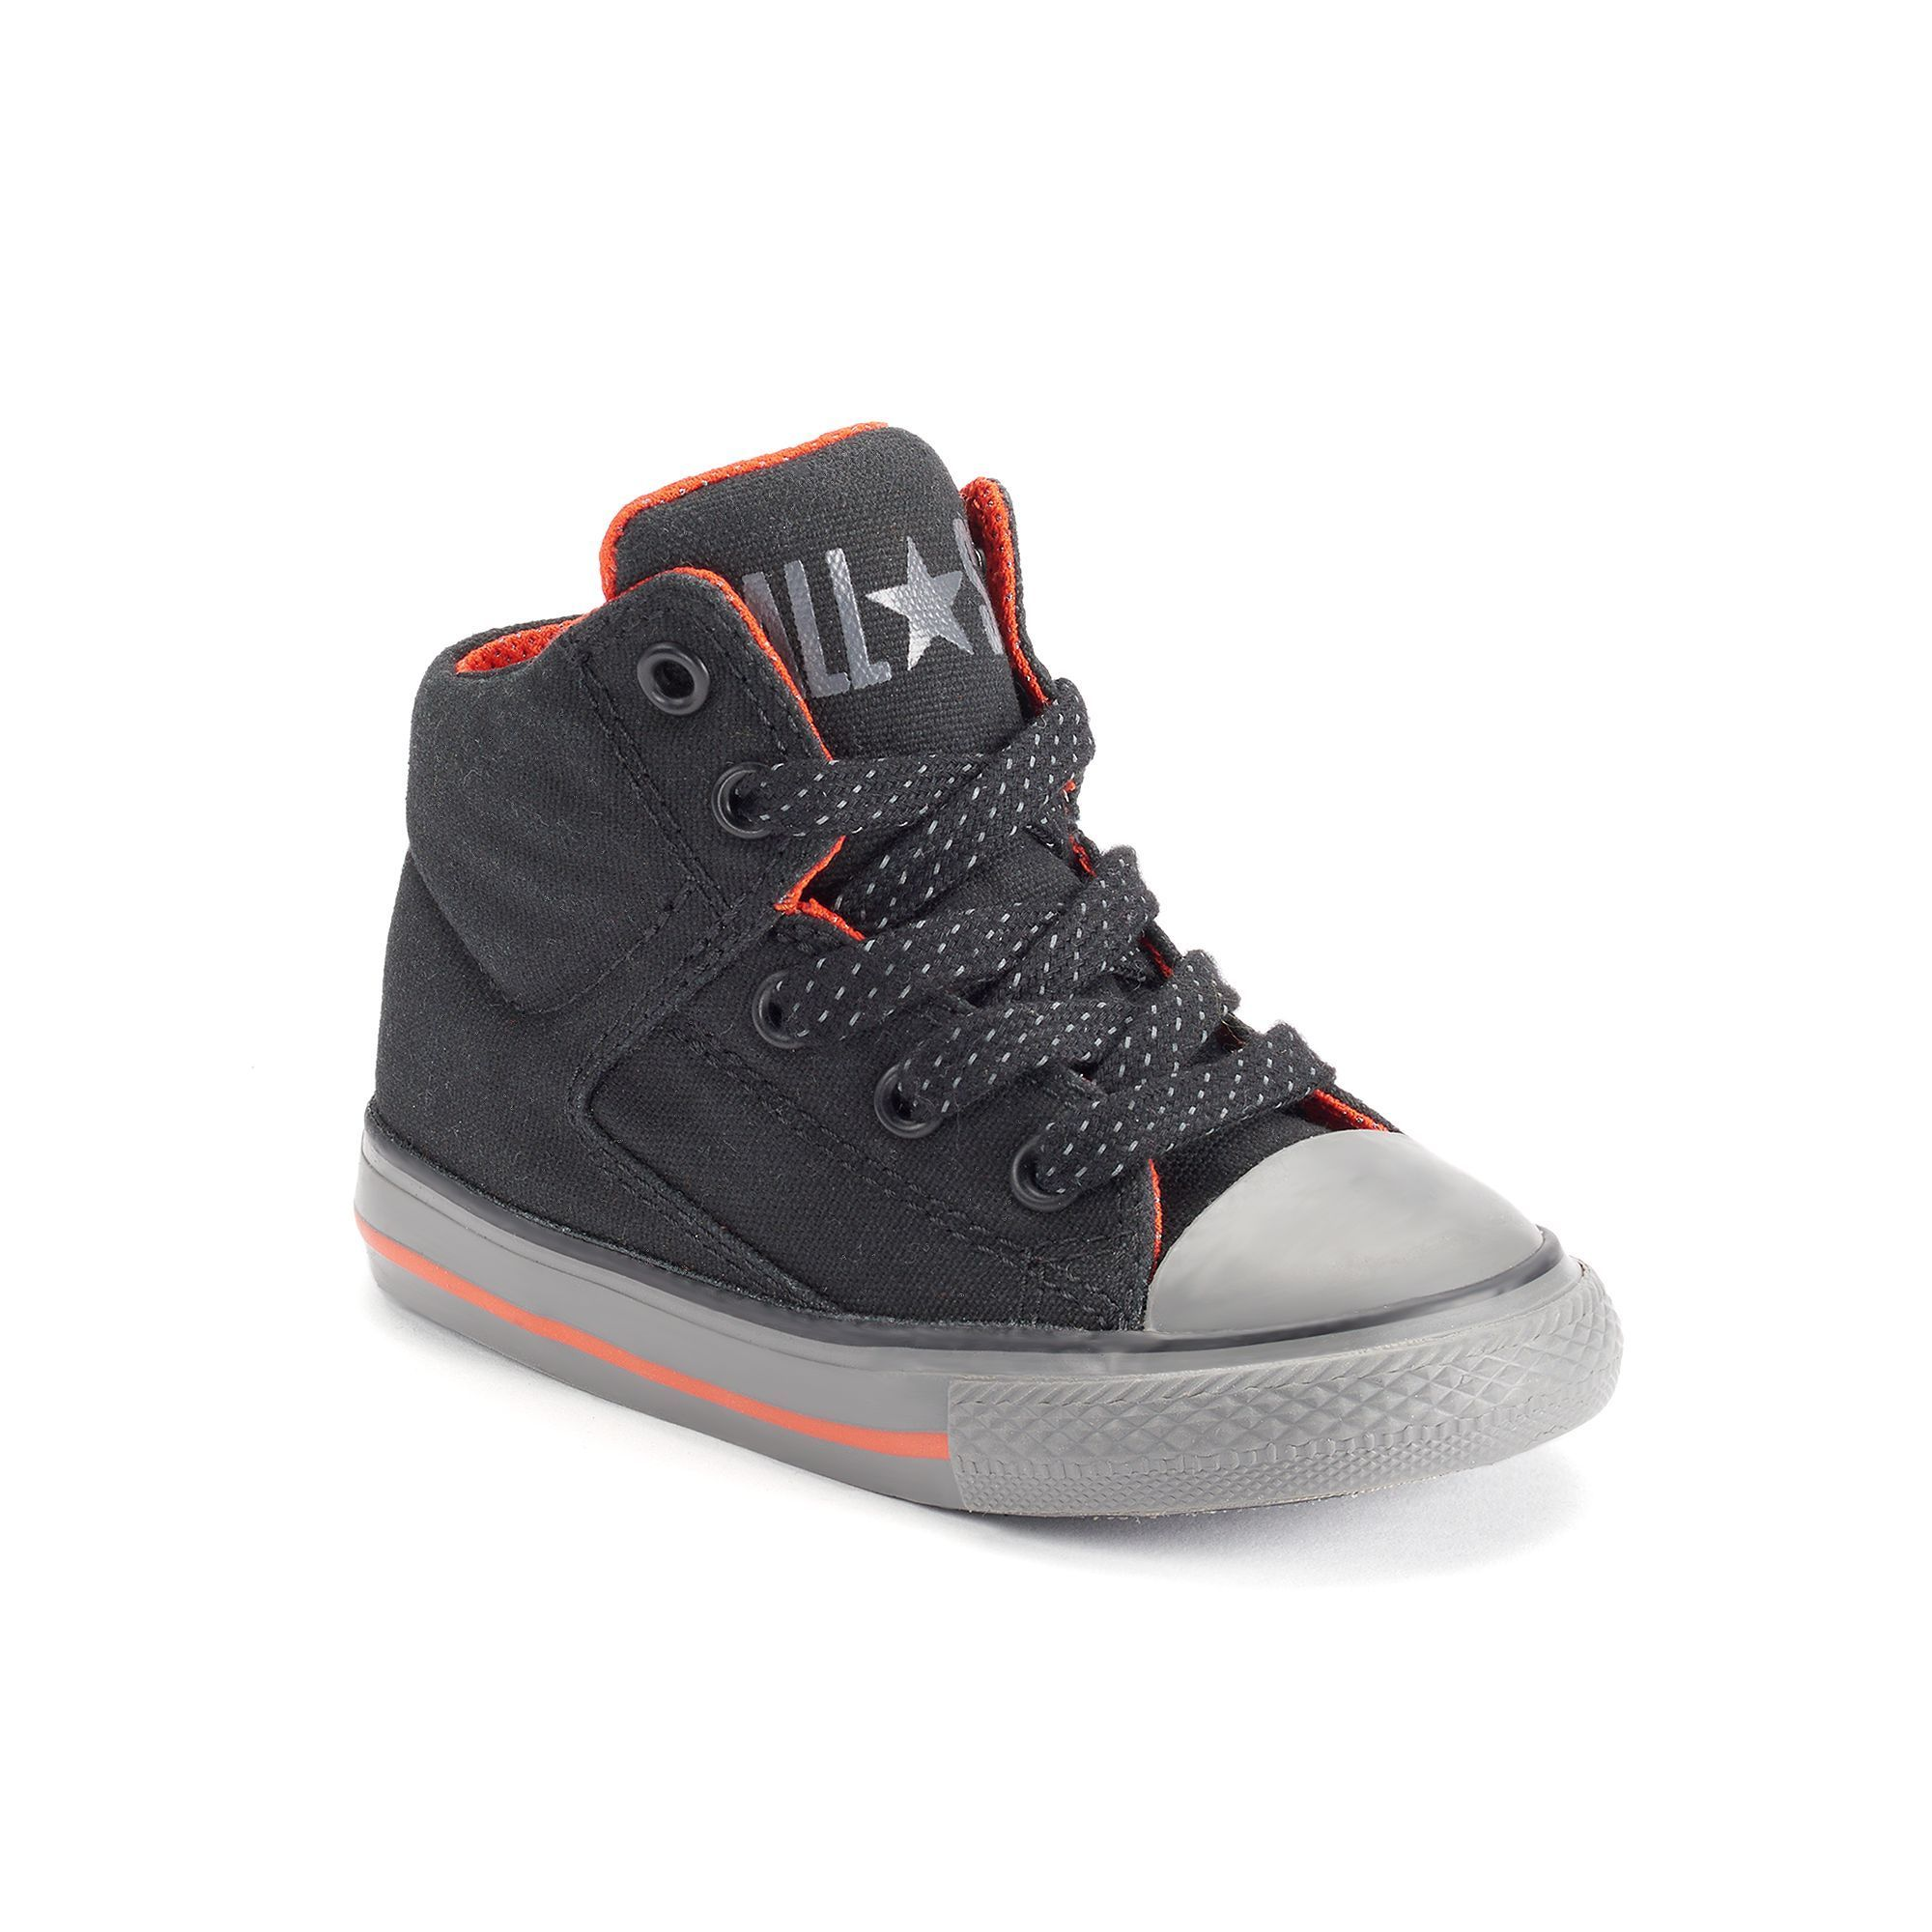 2fa1fd9adcd5 Baby   Toddler Converse Chuck Taylor All Star High Street Water-Resistant  High-Top Sneakers